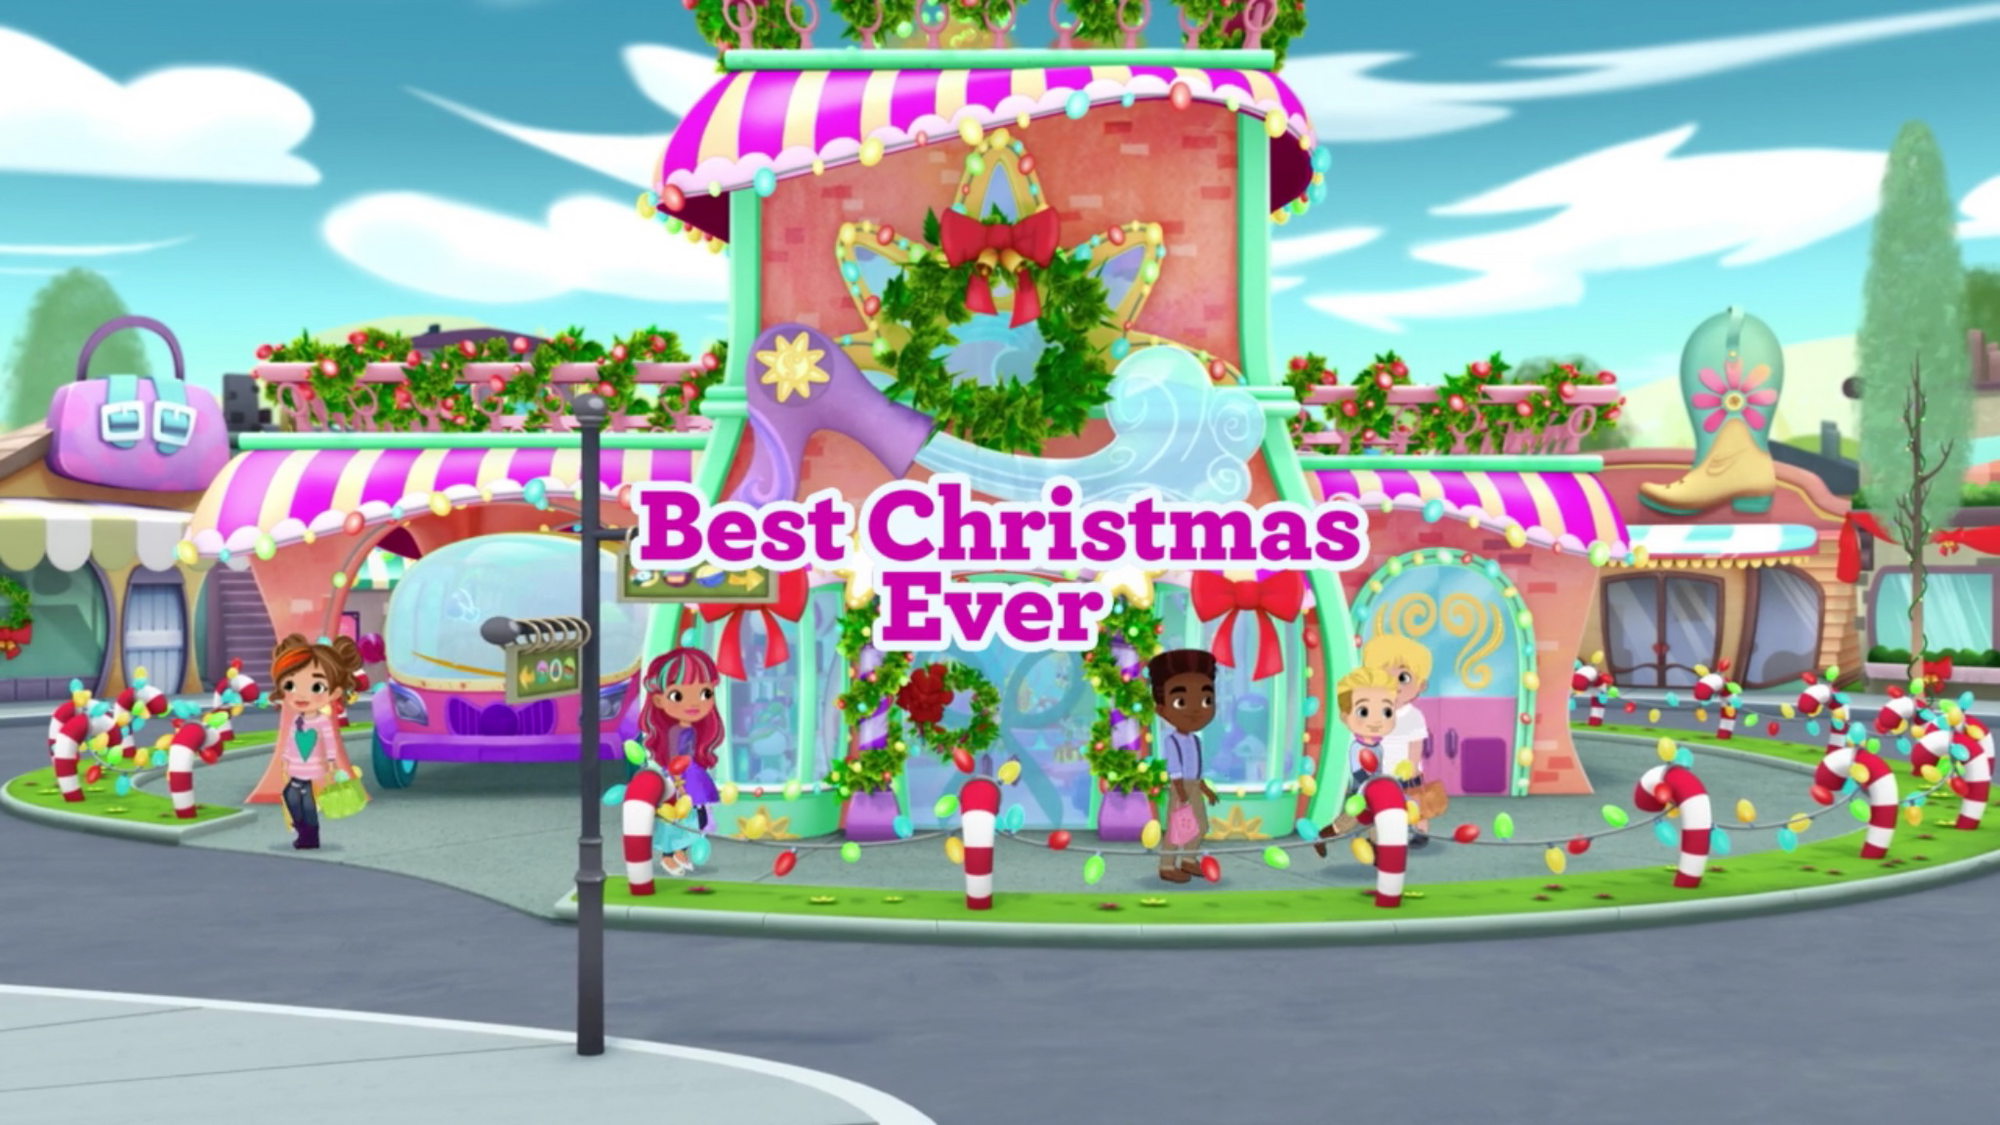 Best Christmas Specials.Best Christmas Ever Sunny Day Christmas Specials Wiki